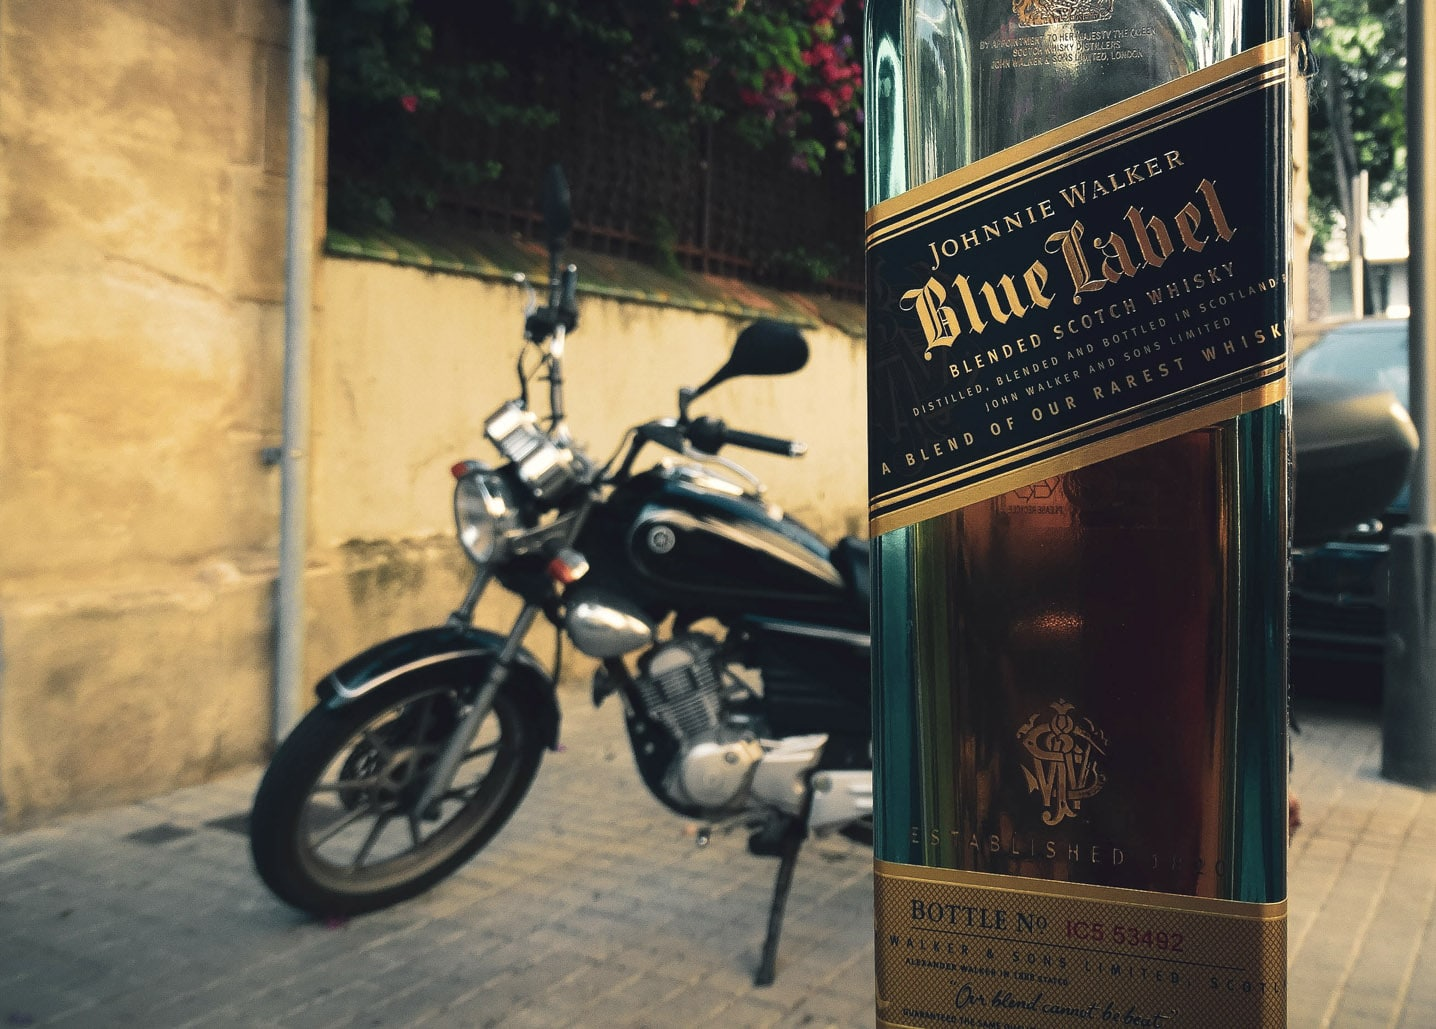 Johnnie Walker Blue Label - Todo Whisky